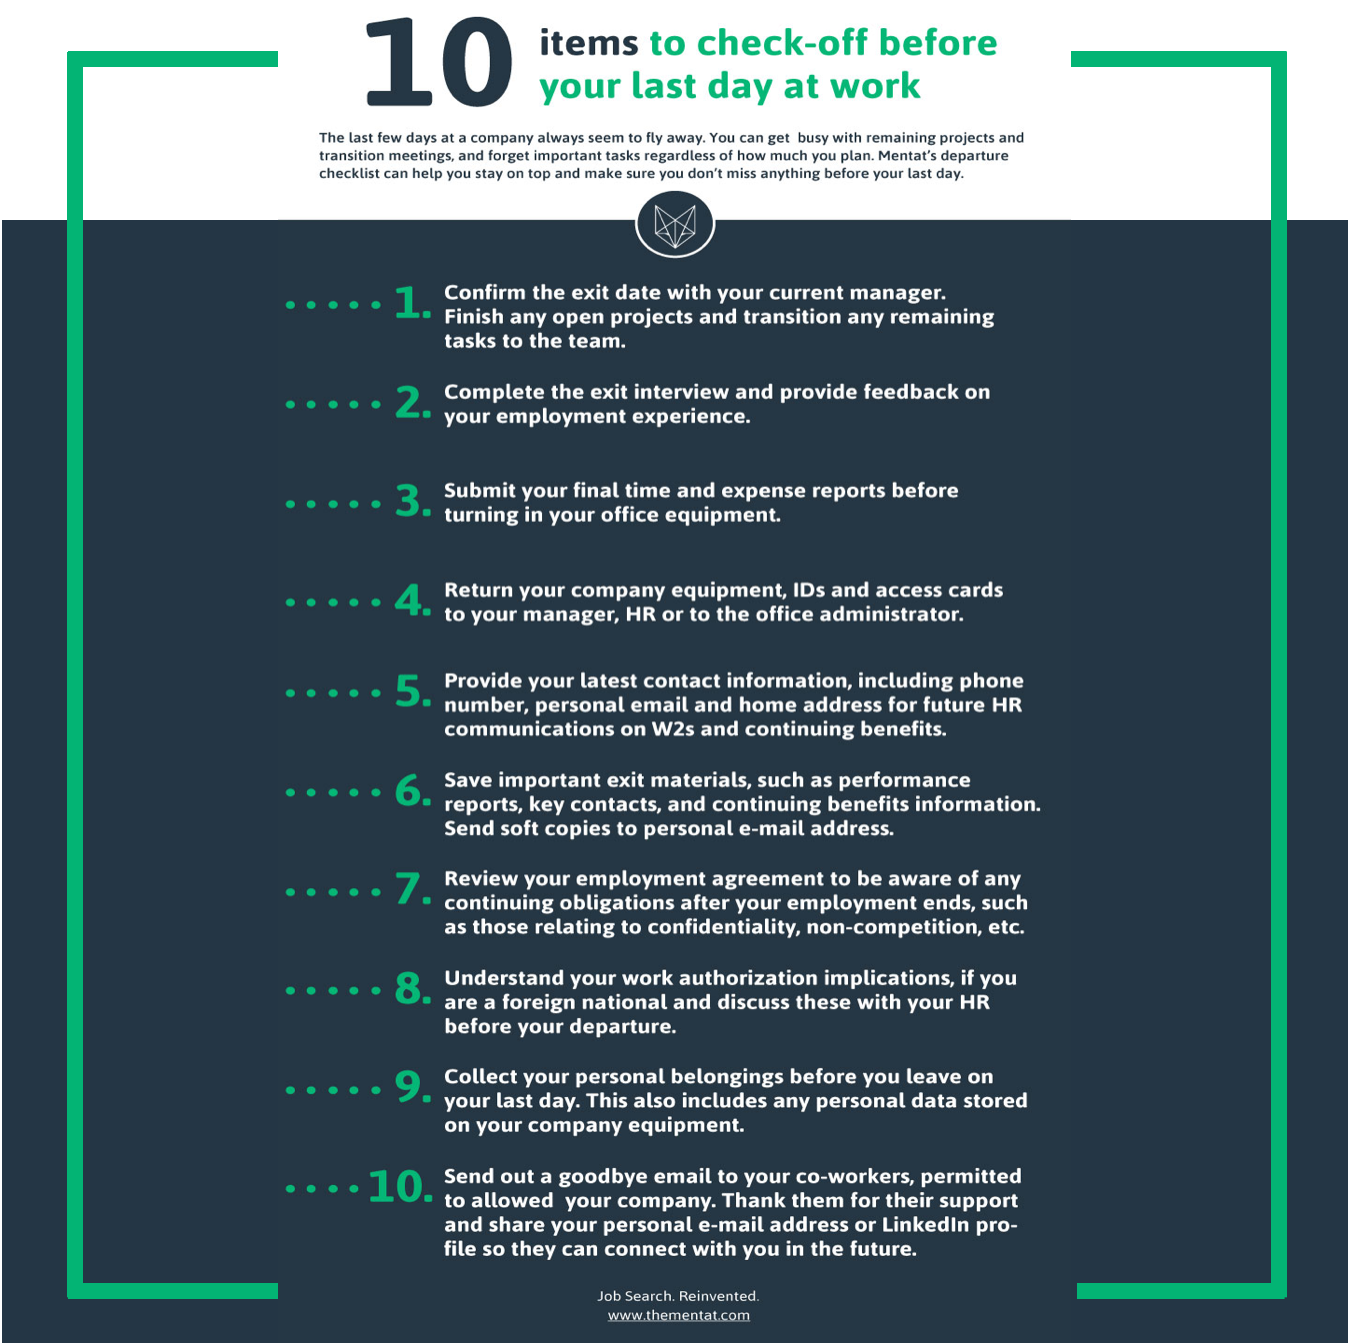 Employee Exit Checklist 10 Items To Check Off Before Your Last Day At Work Leaving An Old Job Your Last Few Days Last Day At Work Leaving A Job Last Day